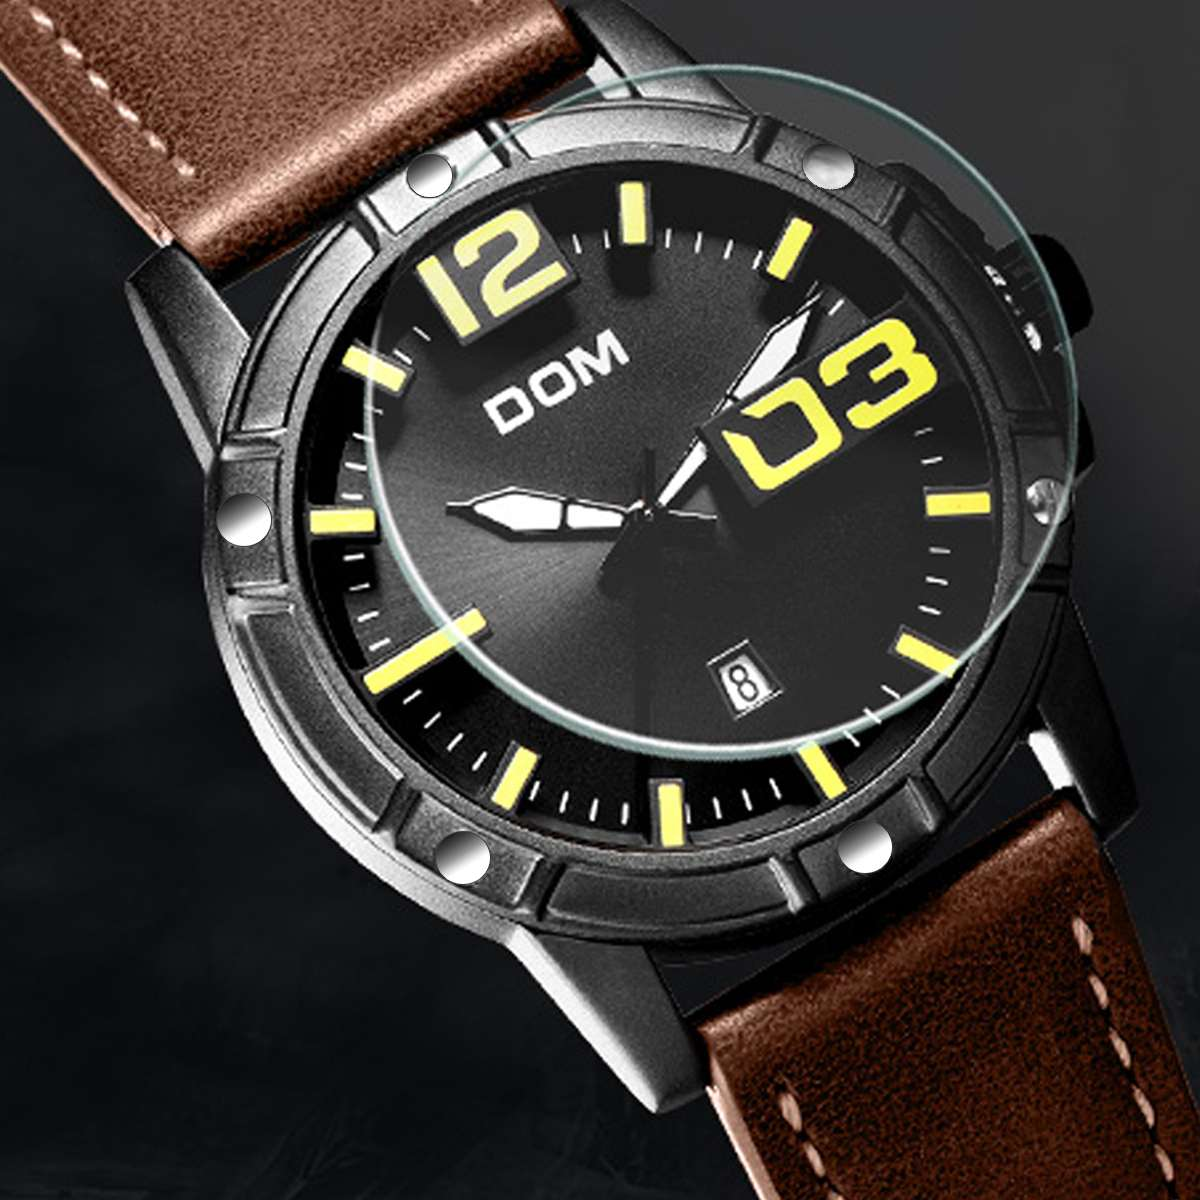 DOM Watch Men Luxury Sport Quartz wristwatch clock Mens Watches Leather Business Waterproof watch Men Gifts M-1218BL-1M5